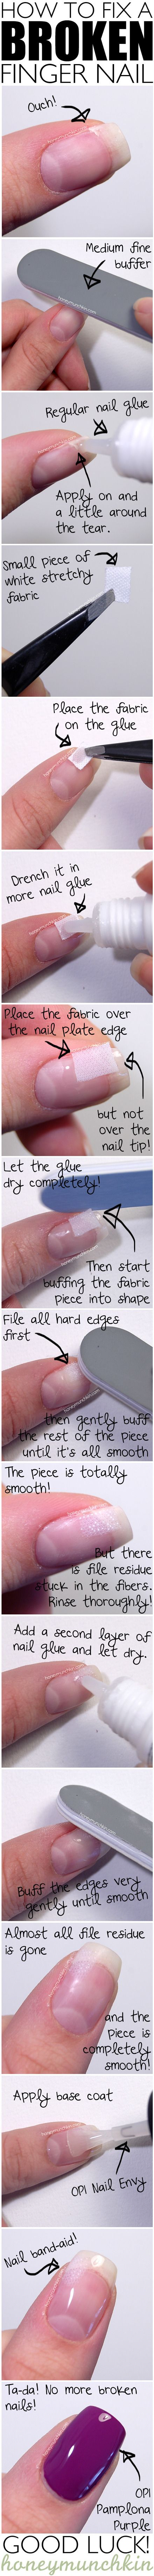 Tutorial: How to fix a broken finger nail. This is something I have ...